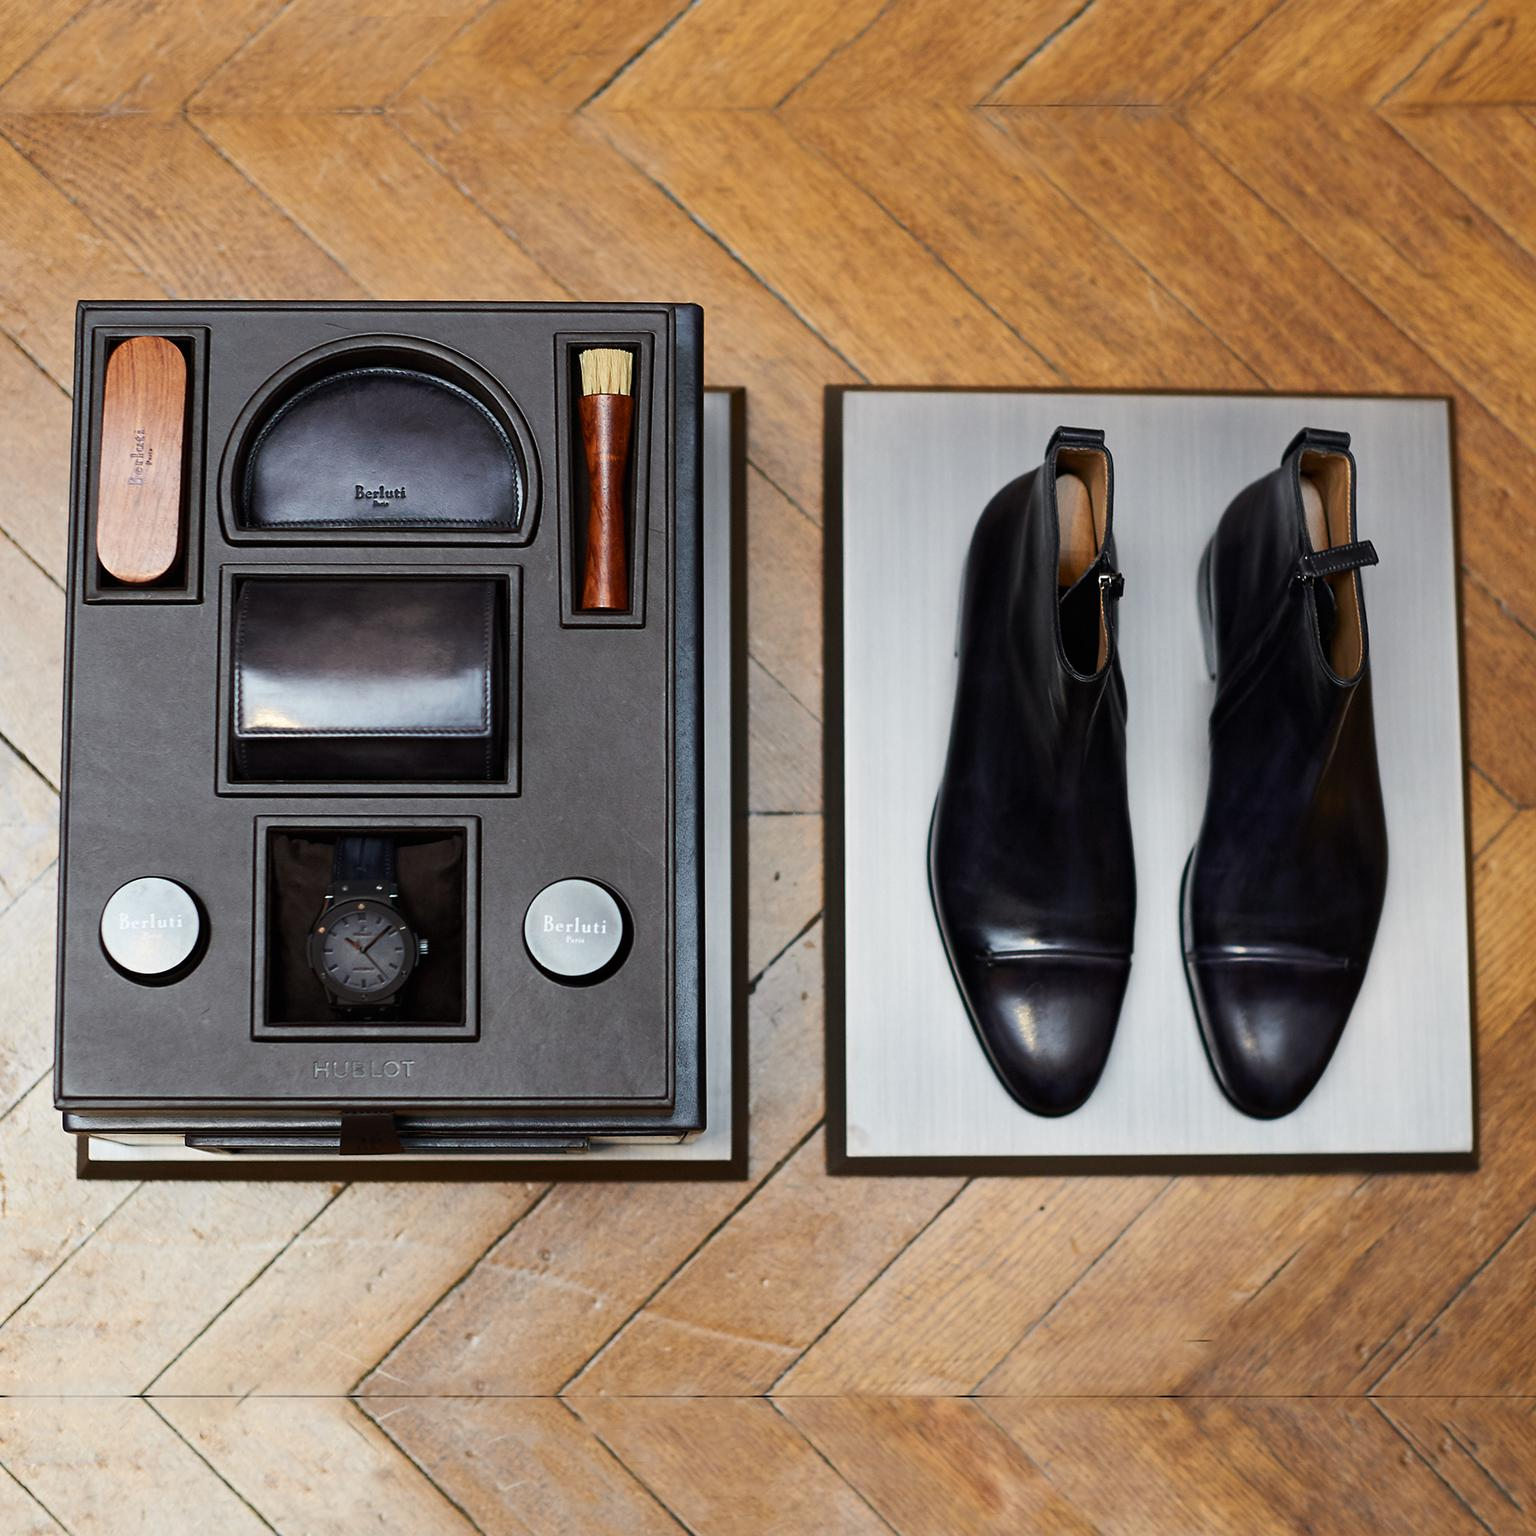 Hublot's fusion with shoemaker Berluti